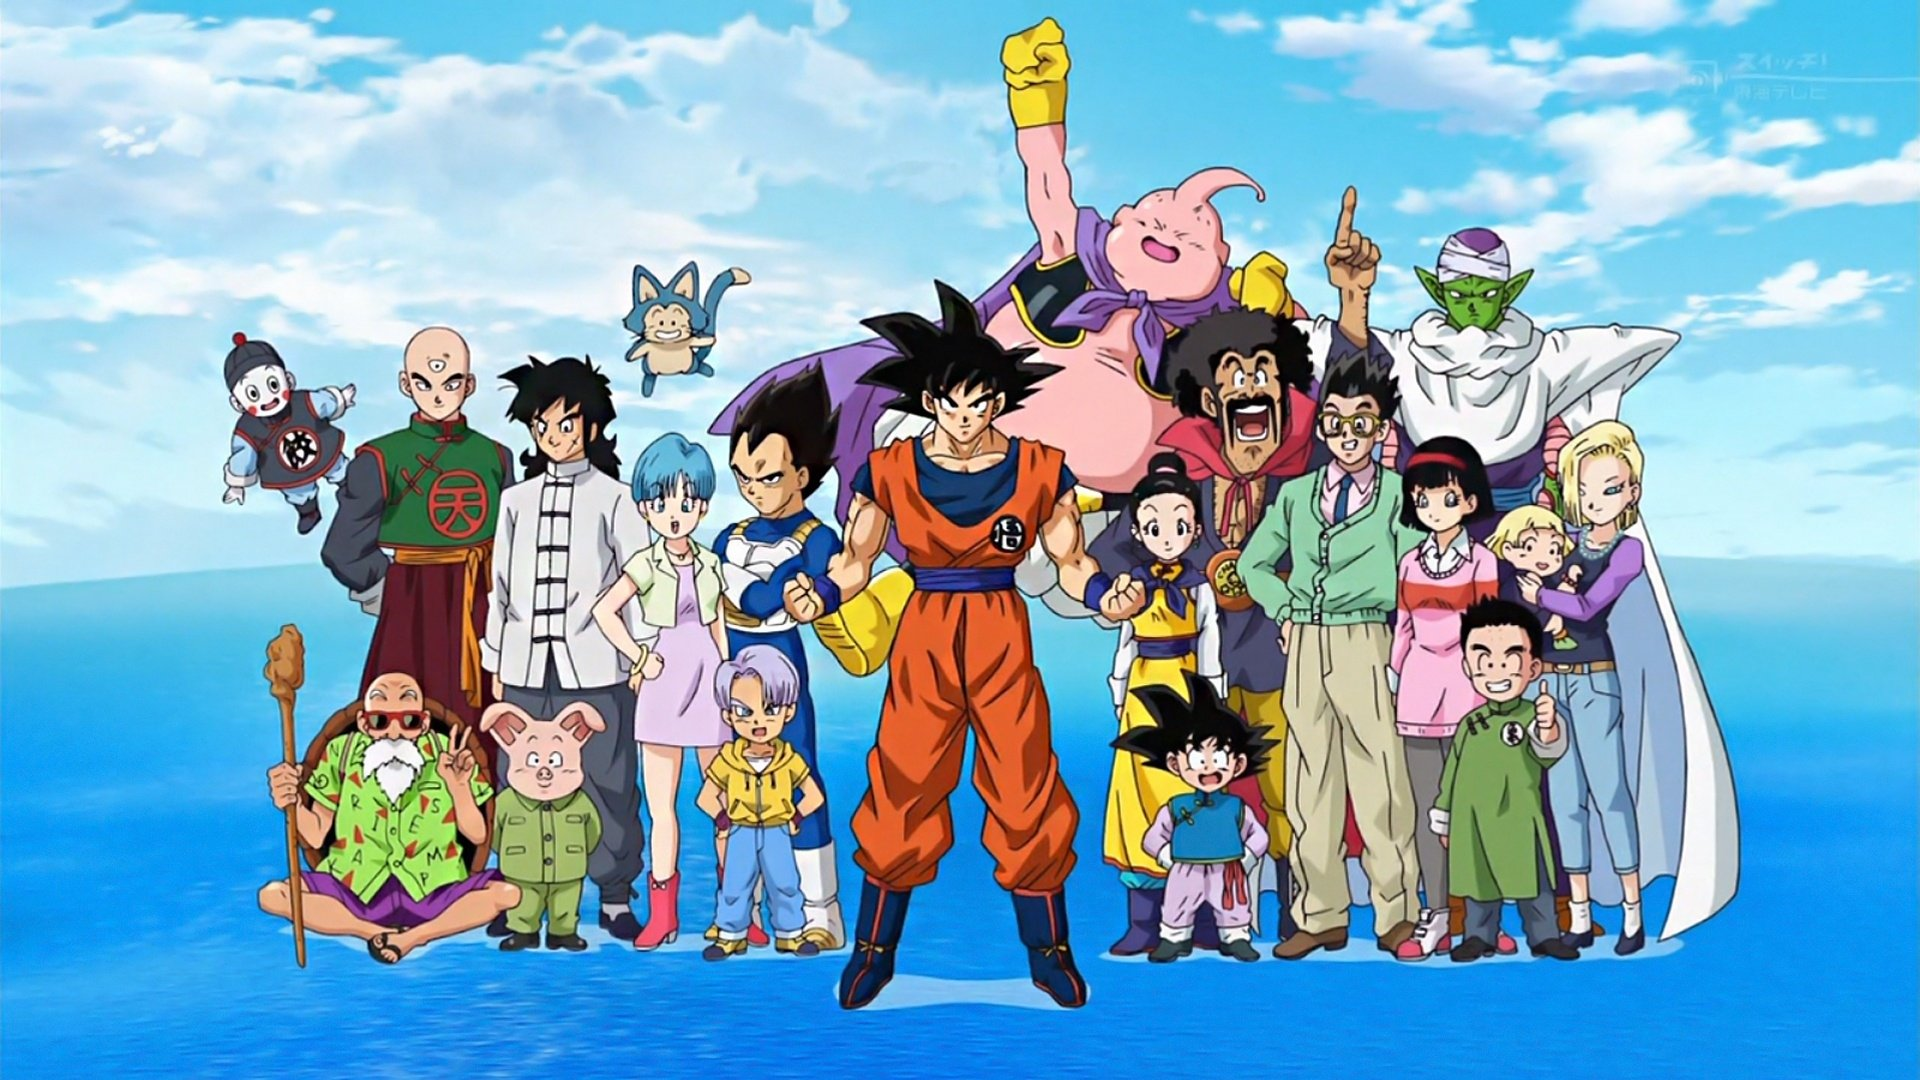 Dragon Ball Super poster Full HD Wallpaper and Background